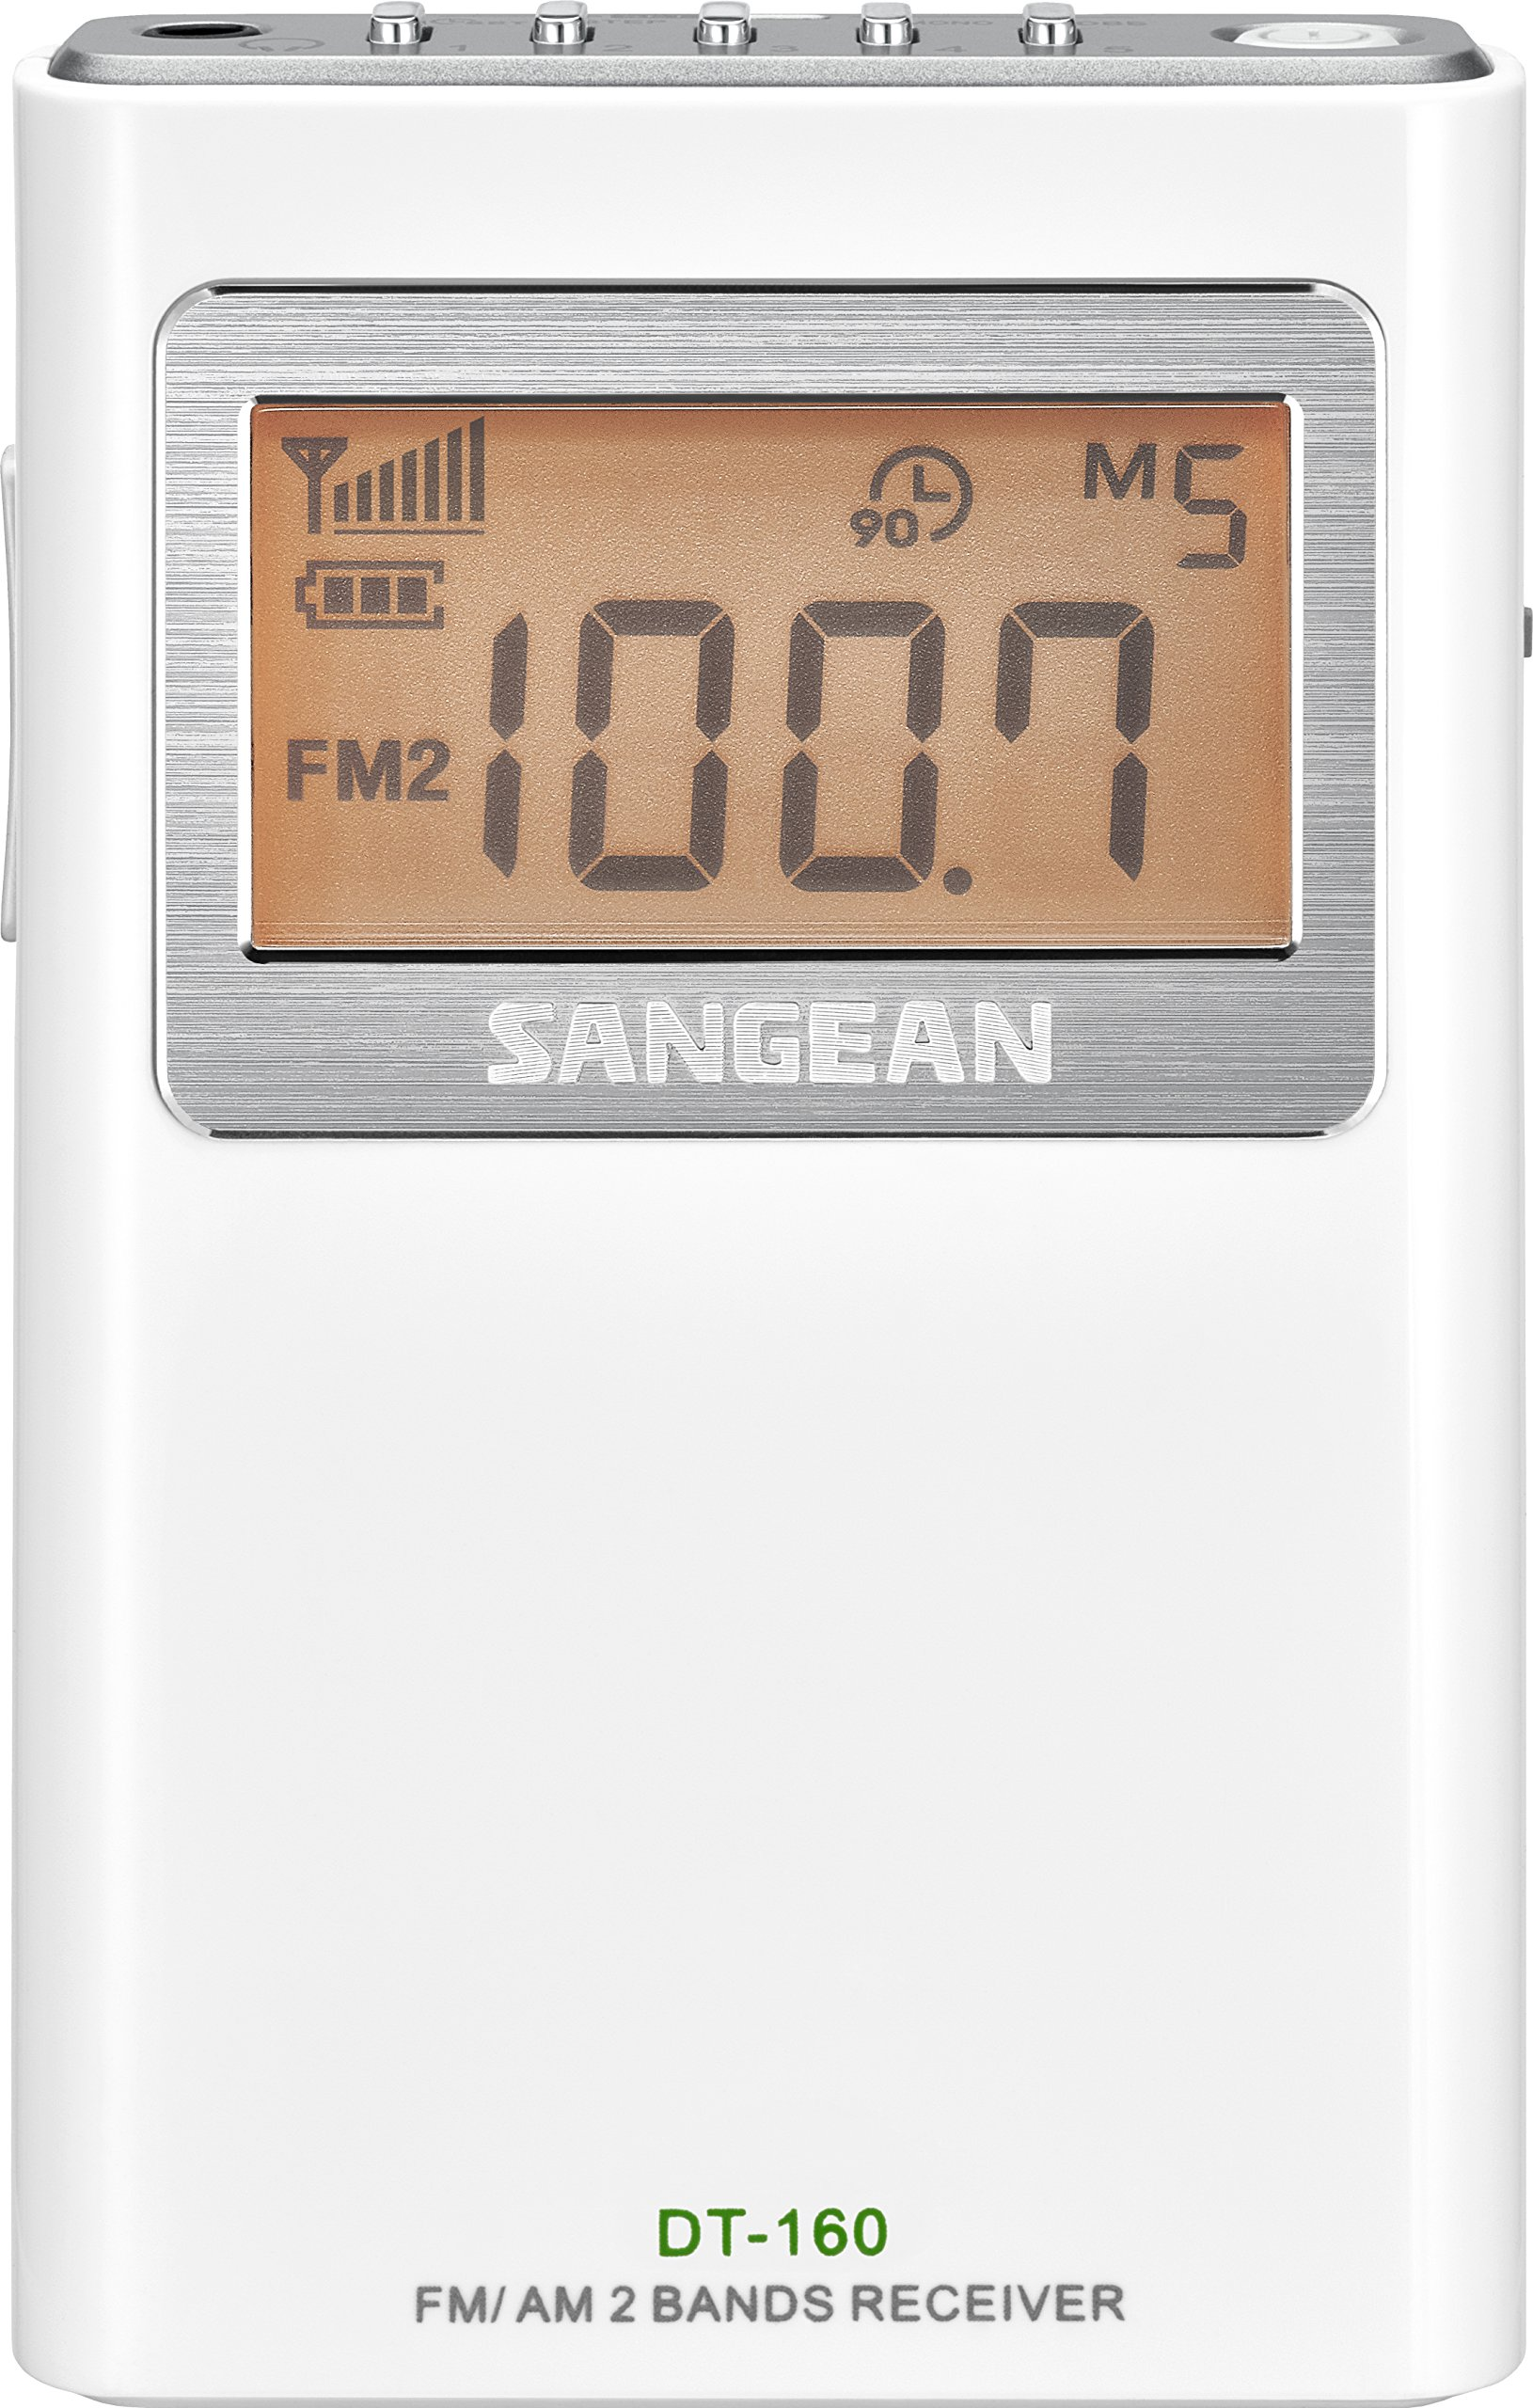 Sangean DT-160 FM/AM Stereo Pocket Radio (White)